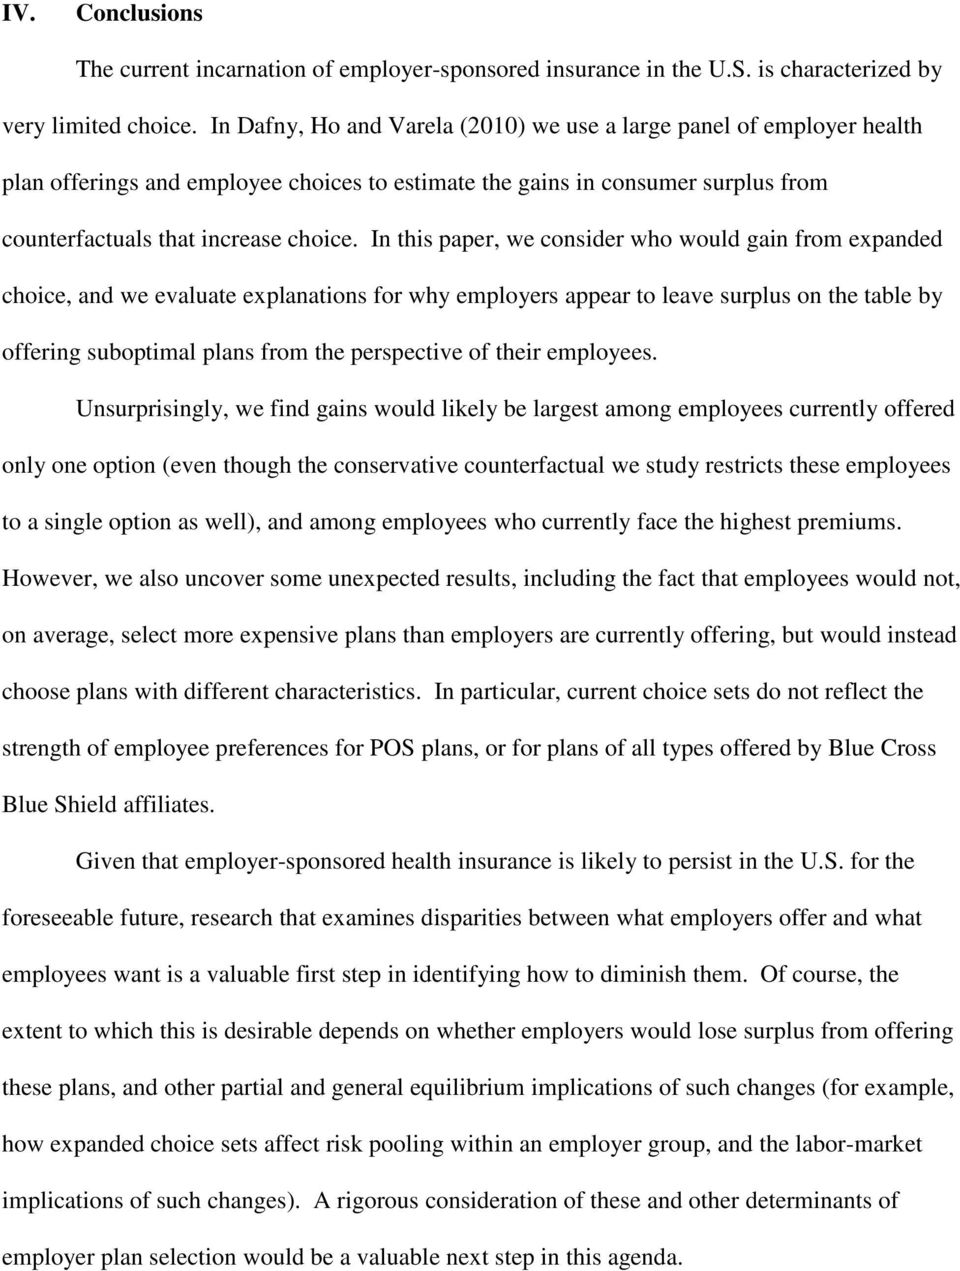 In this paper, we consider who would gain from expanded choice, and we evaluate explanations for why employers appear to leave surplus on the table by offering suboptimal plans from the perspective